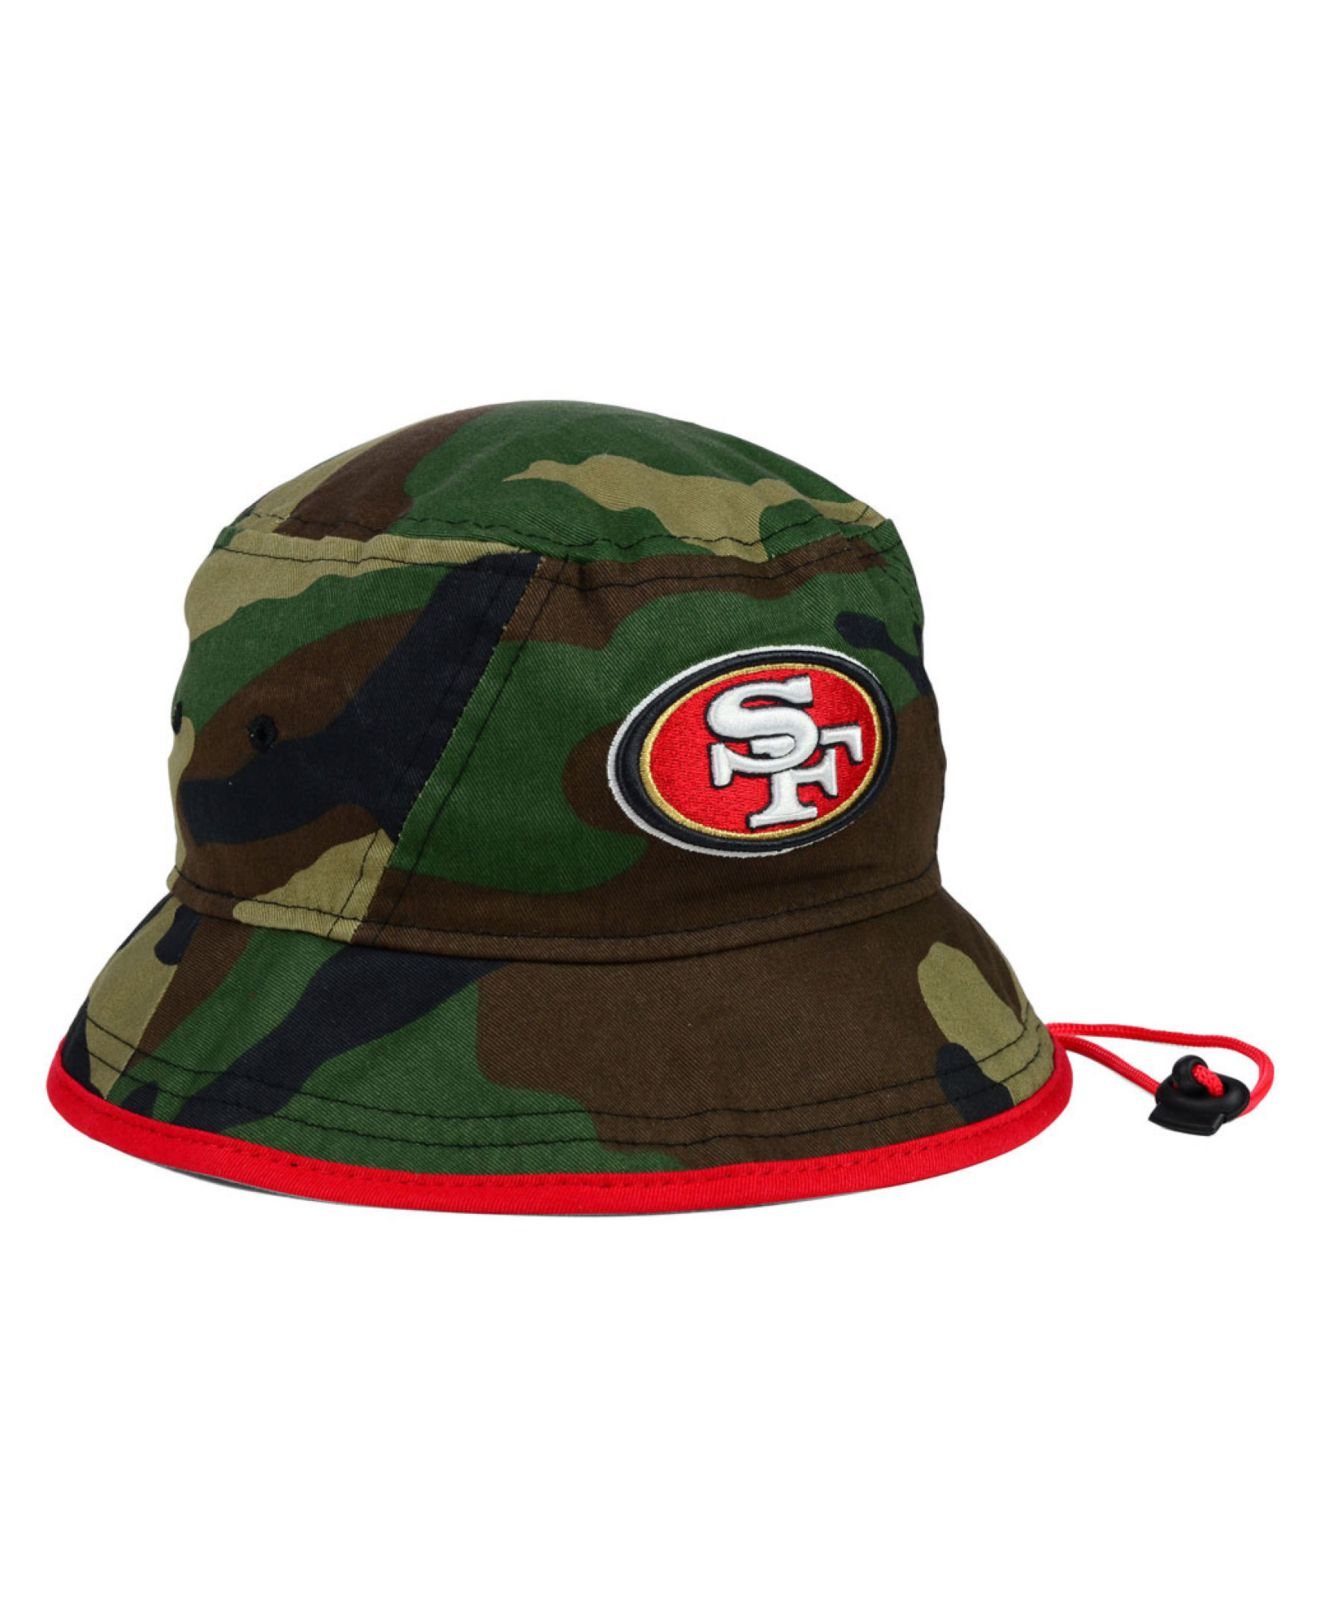 e15416f3 low cost lyst ktz san francisco 49ers camo pop bucket hat in green for men  38cbe